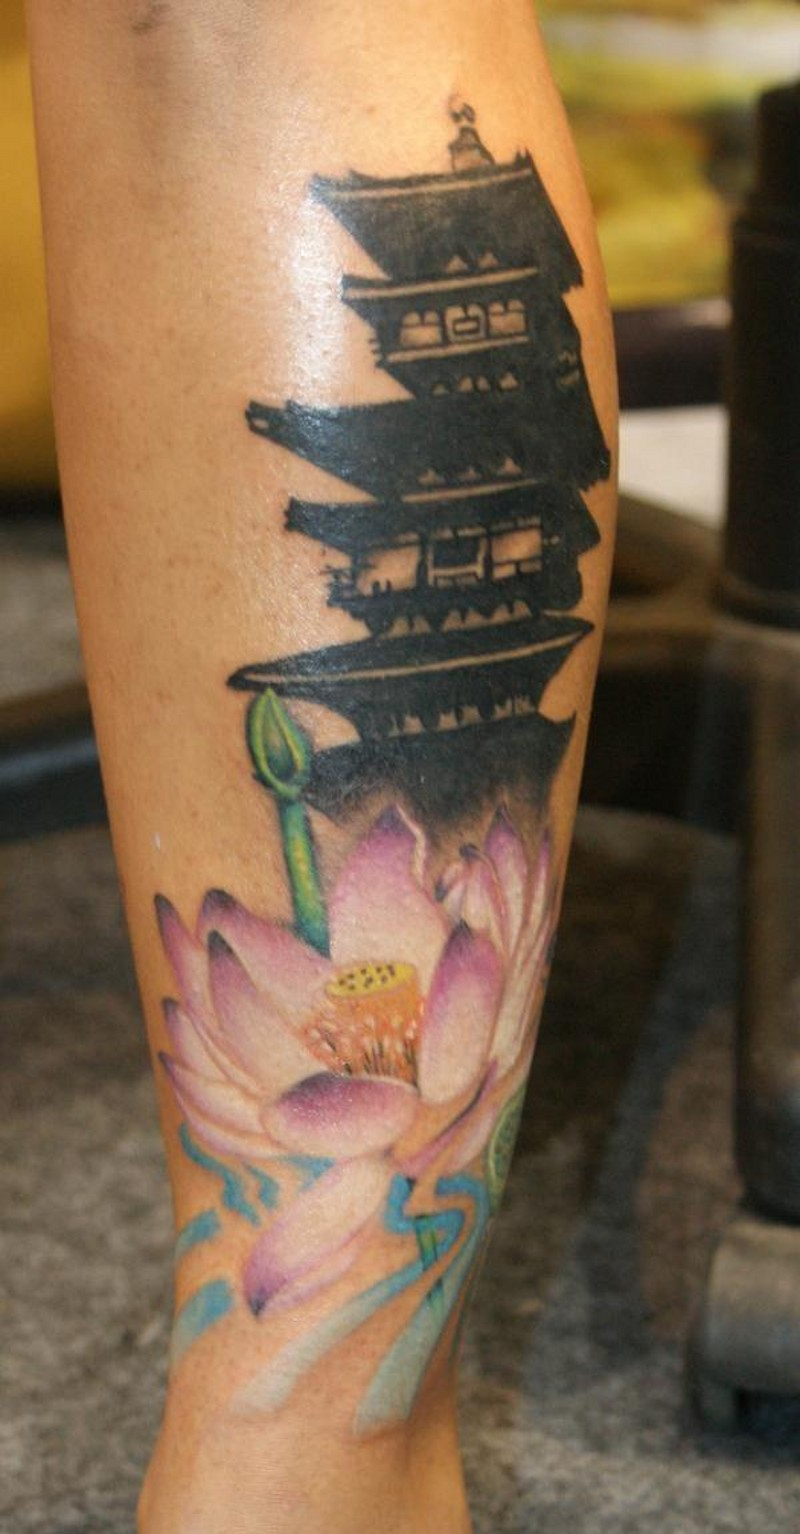 Medium black ink old Asian temple tattoo on leg combined with colored flower